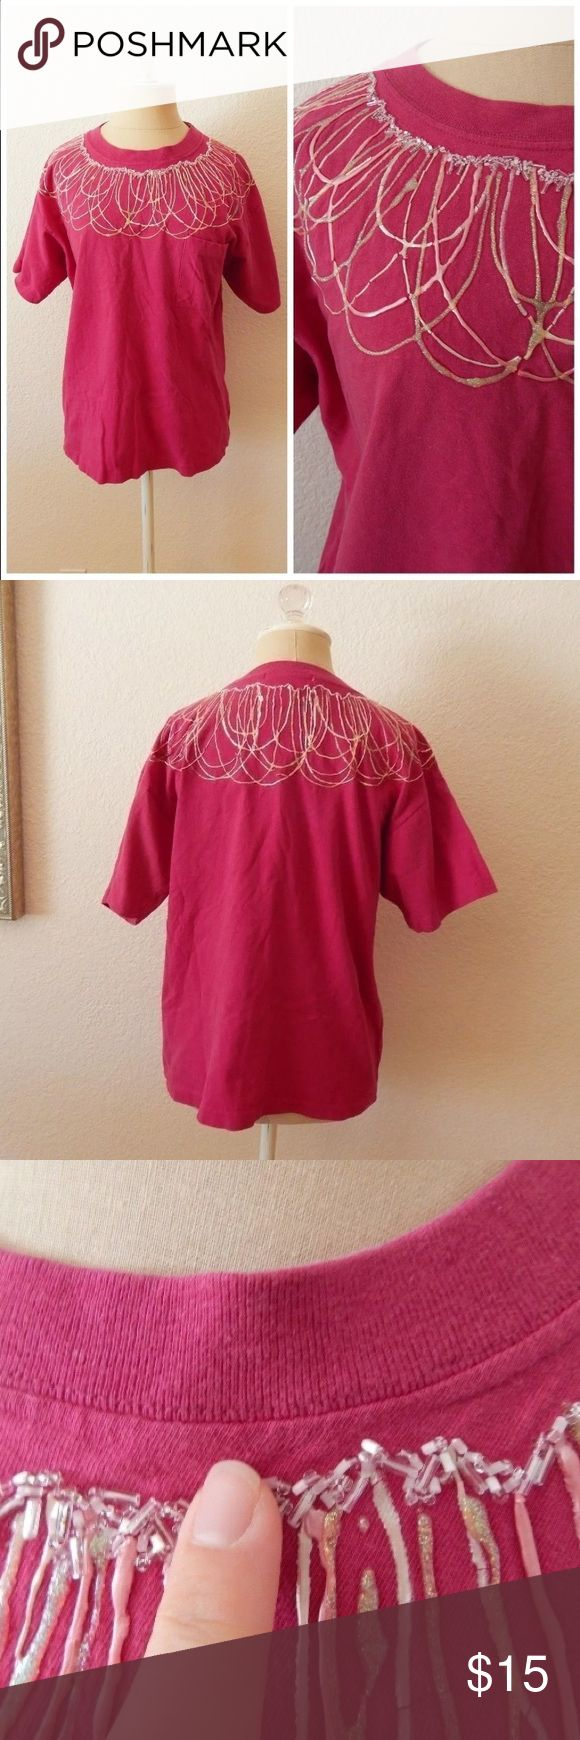 """Vintage 80s Puff Paint Glitter T Shirt Top Vintage 80s Pink Puff Paint Womens Glitter Hipster Ugly T Shirt Short Sleeve Fall Tops  By Clovelly 100% Cotton Made in Guatemala Machine Wash Dry Flat 1 Chest Pocket Please See Cracking in Paint Tag Size Large - shown on Small ( will for small baggy, medium slightly baggy , and large fitted)  Bust circumference: 40"""" (101.6 cm) Length: 24"""" (60.96 cm) Vintage Tops Tees - Short Sleeve"""